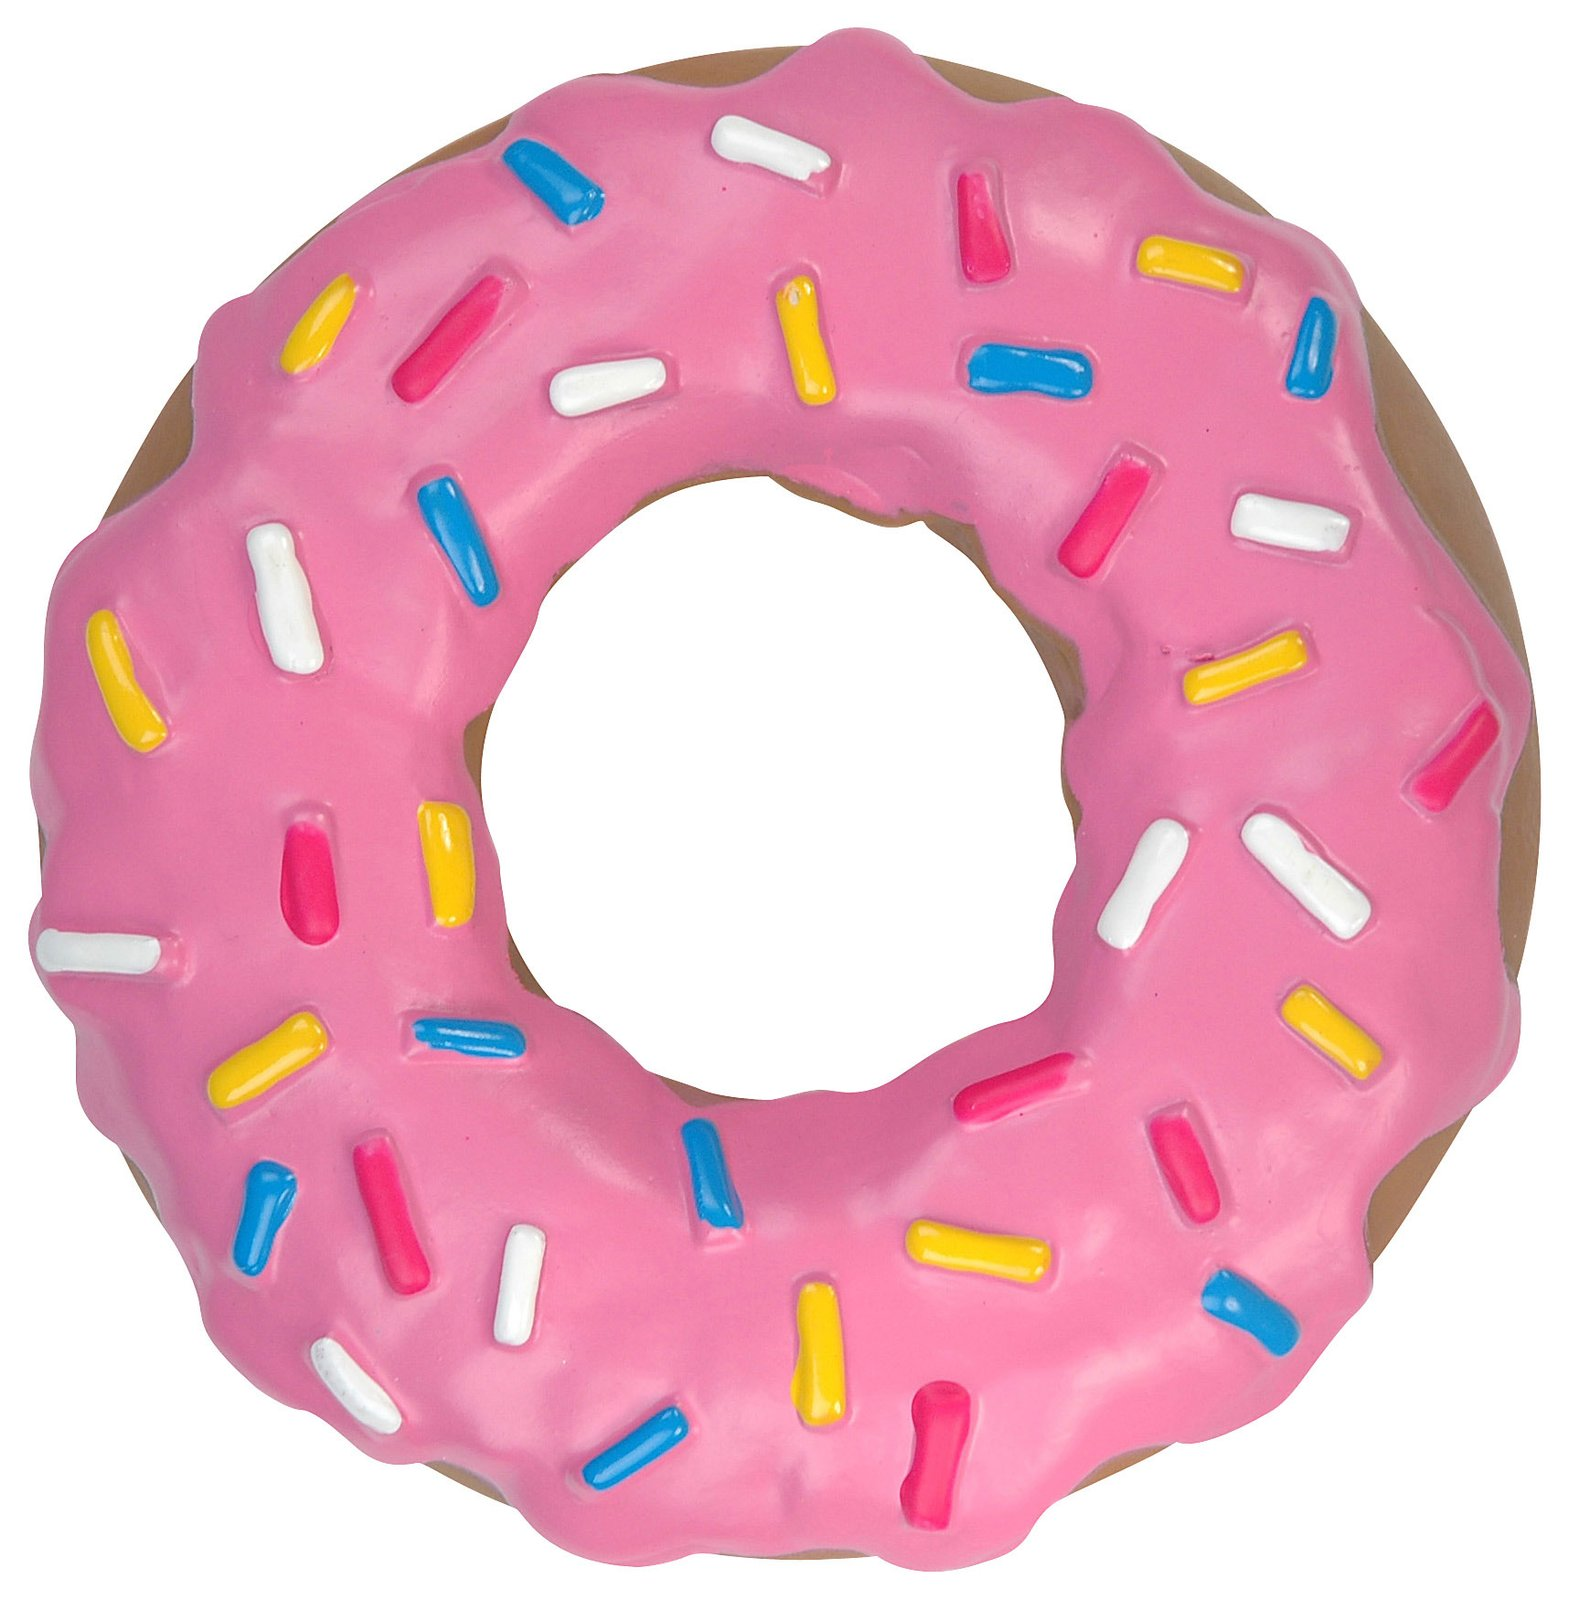 Donut Clip Art. Advertising. You Need To-Donut Clip Art. Advertising. You Need To Enable Javascript-1